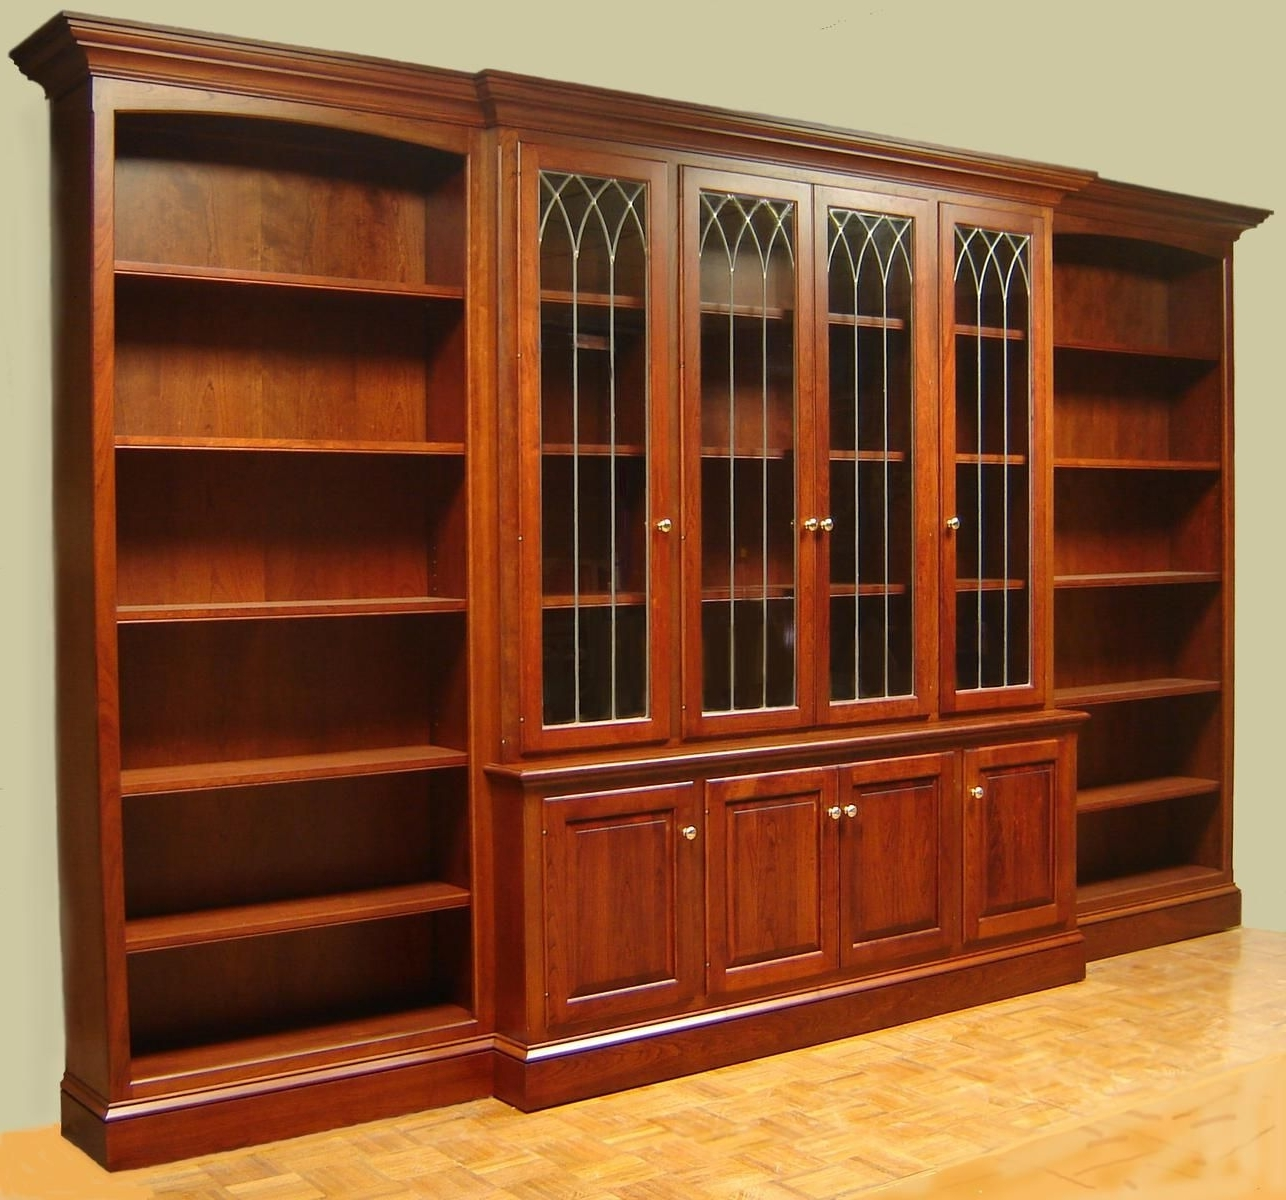 Latest Classic Bookcases Throughout Glass Doors : Classic Bookshelves With Glass Doors – Ana White (View 11 of 15)